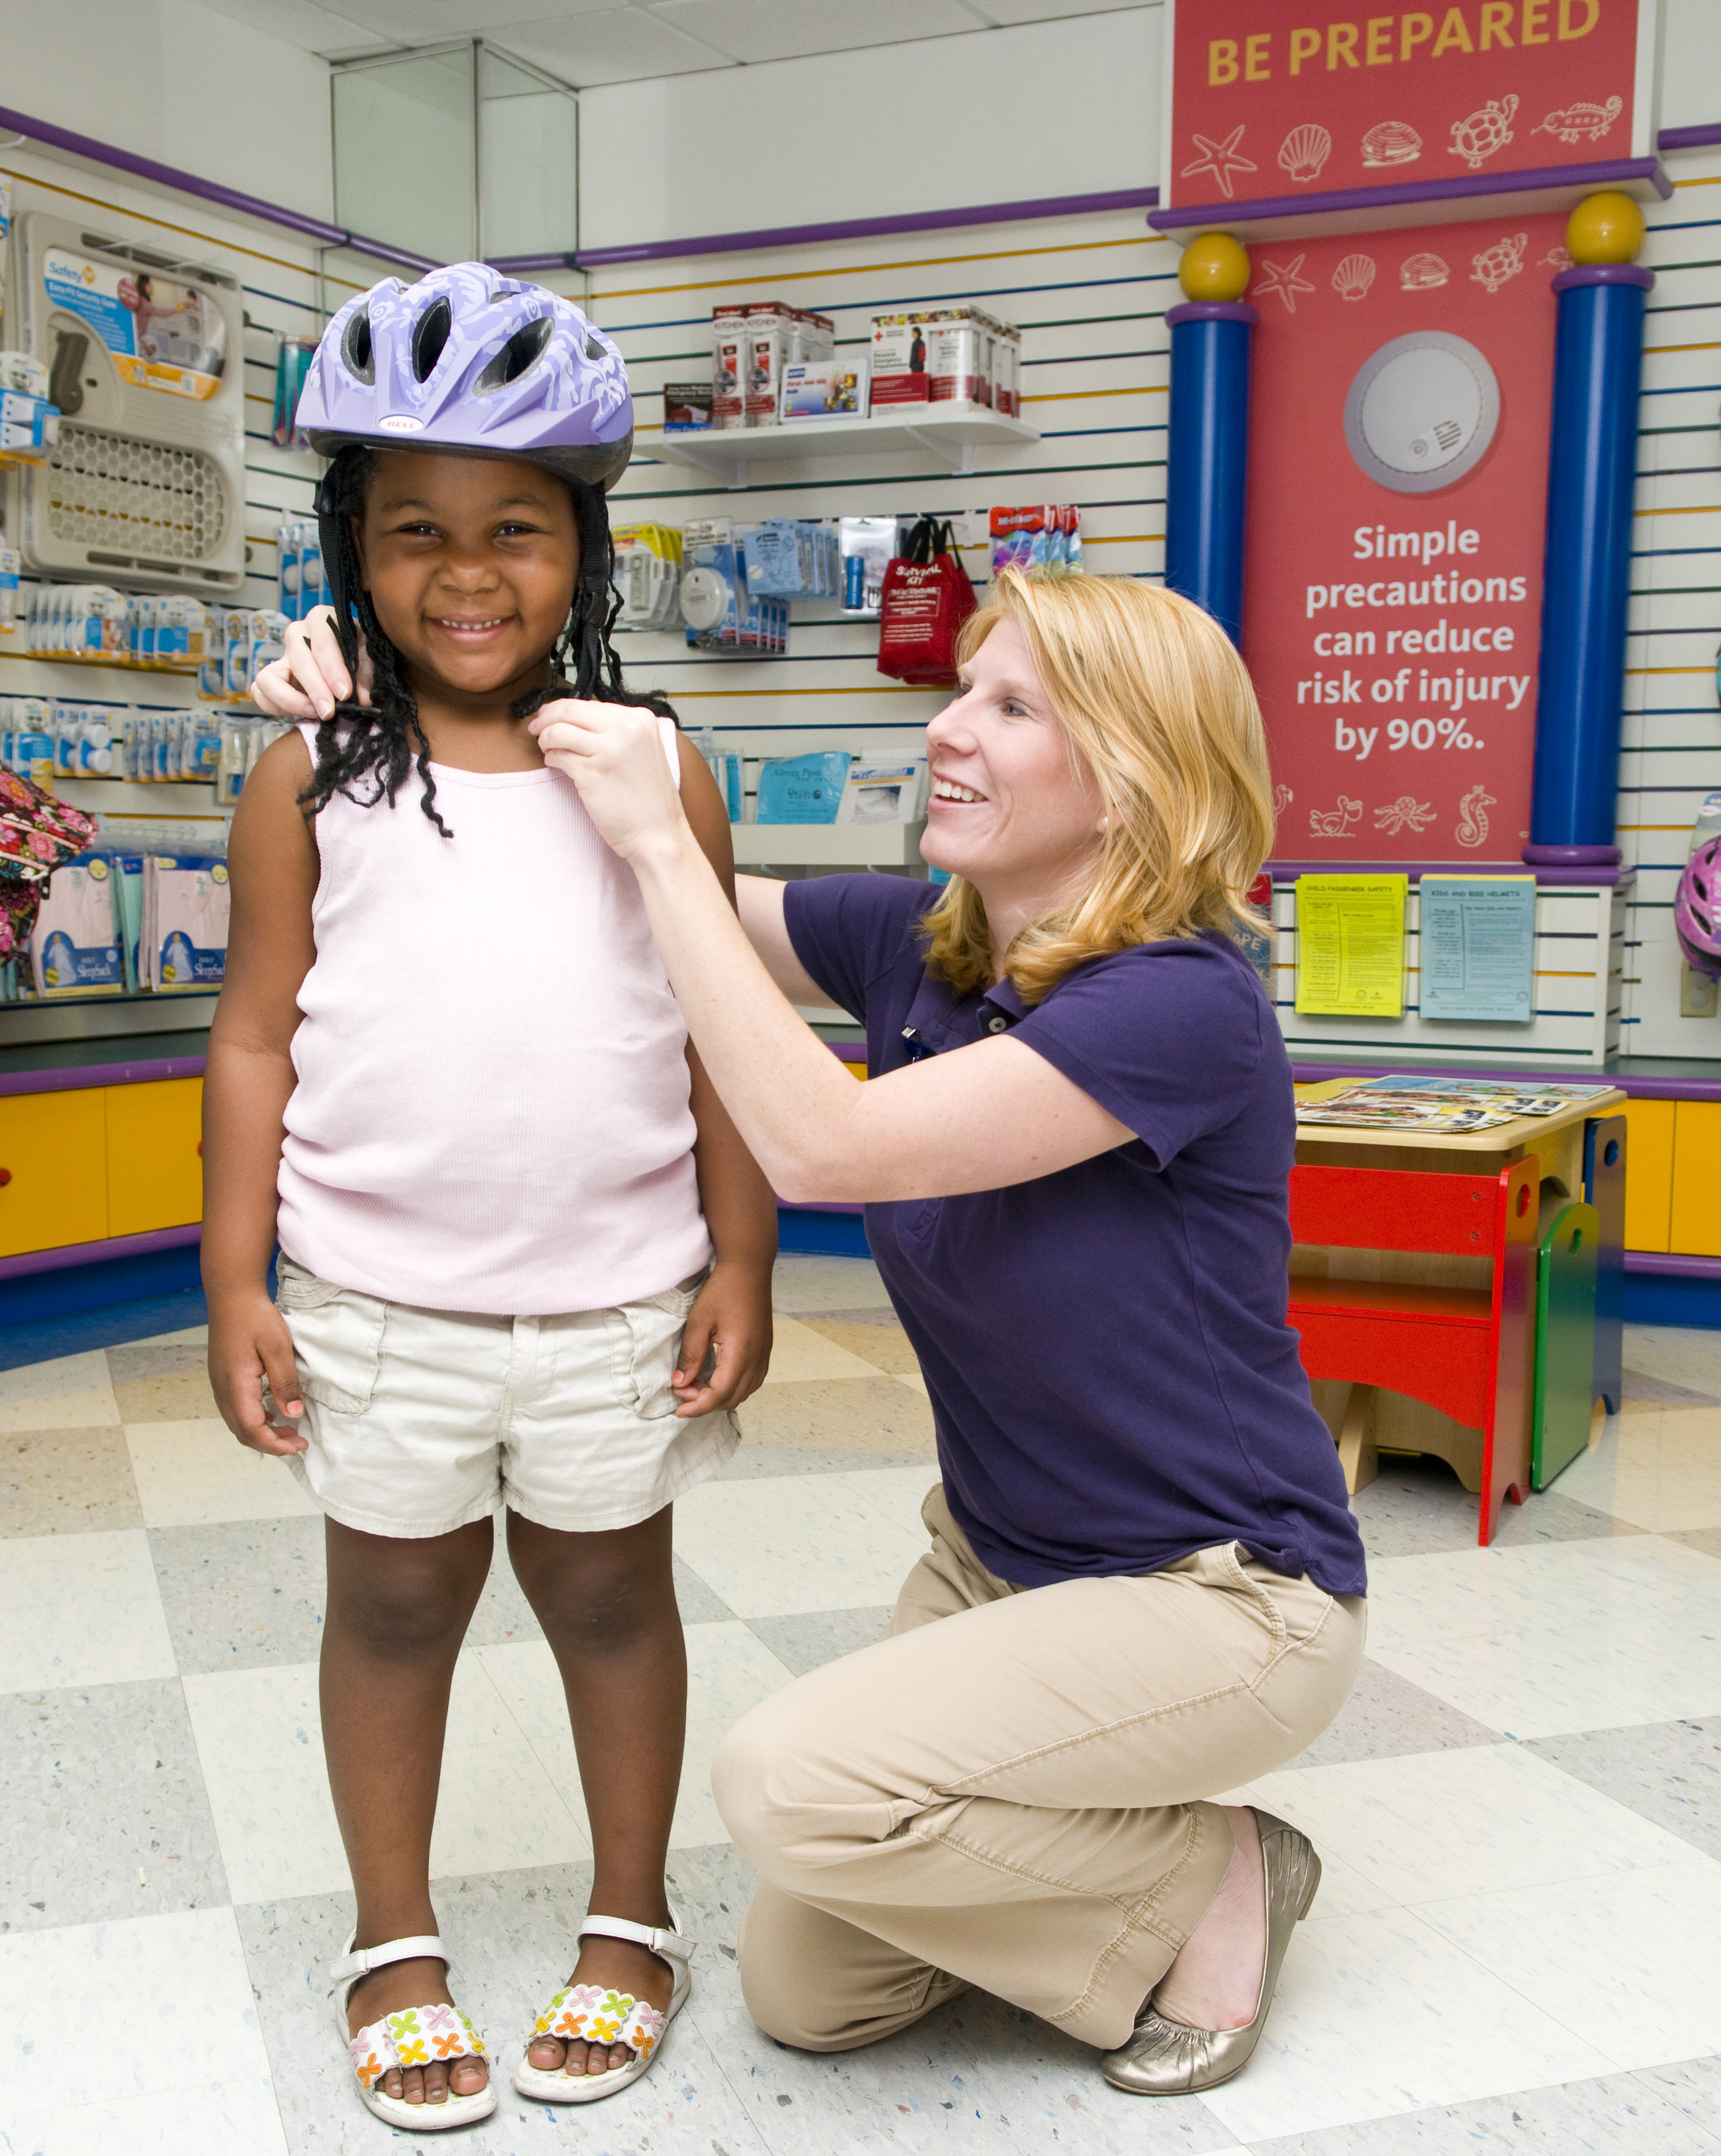 Rebecca Layton, a pediatric wellness and safety expert at St. Joseph's Children's Hospital in Tampa, reminds gift-givers to include a helmet when shopping for bikes, scooters, skateboards and other wheeled activities this holiday season. Wearing a helmet can reduce the risk of head injury by as much as 85 percent and the risk of brain injury as much as 88 percent.